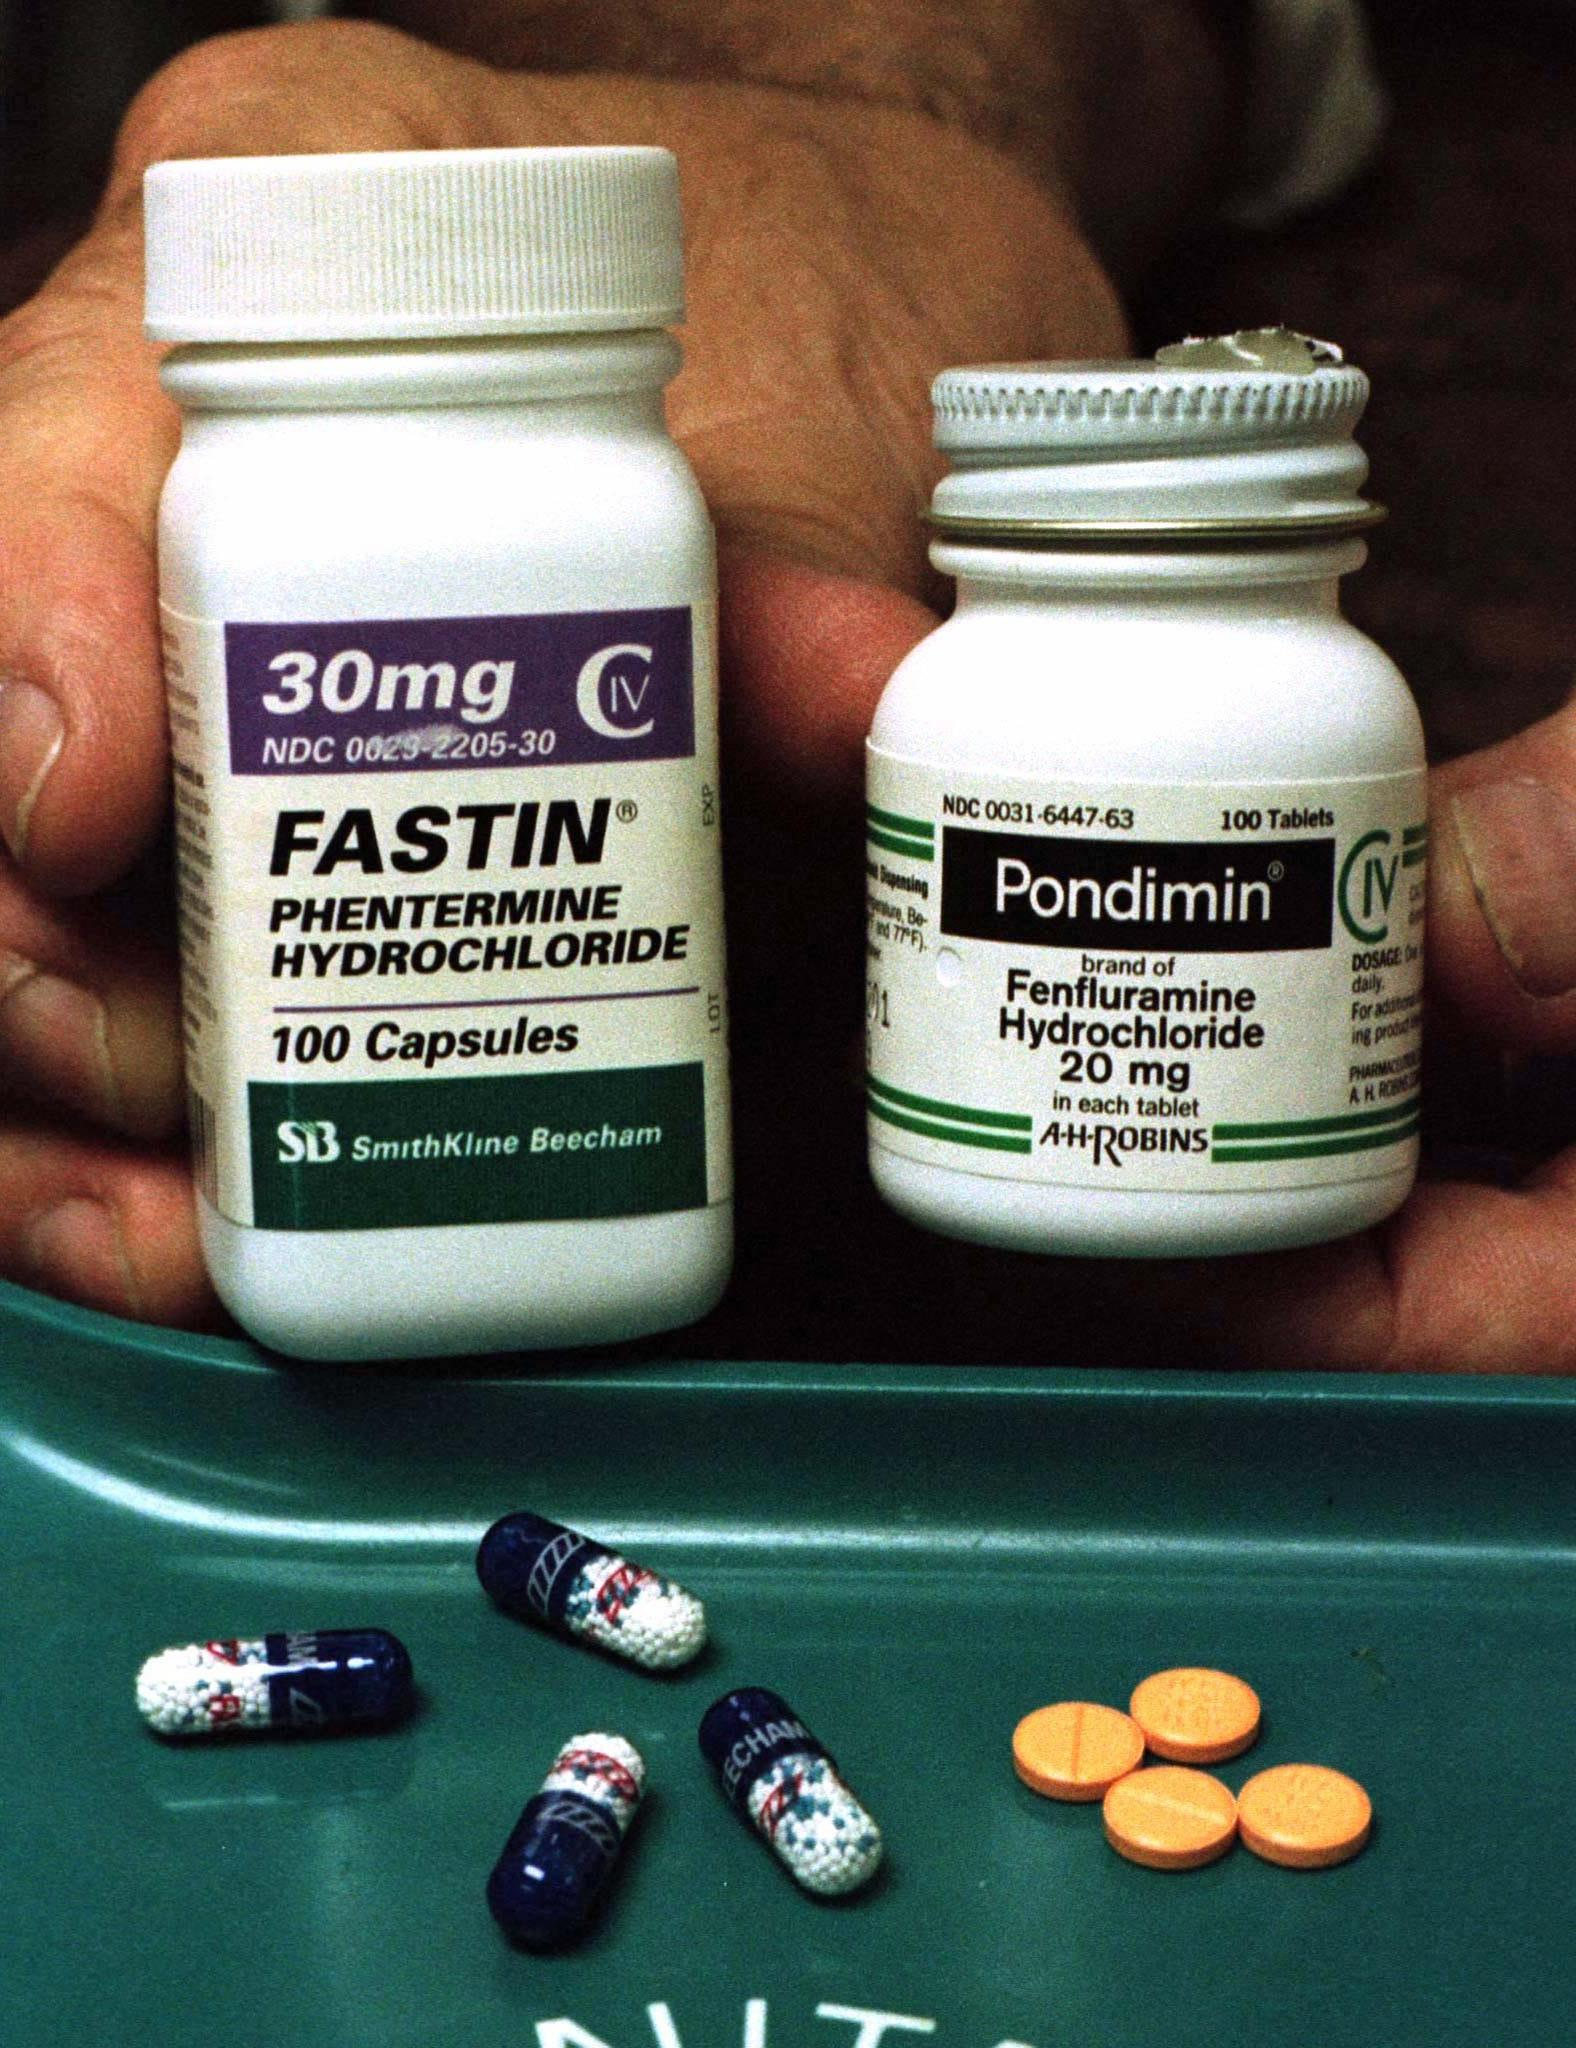 the adverse effects of phentermine and fenfluramine Information on fenfluramine diet pills fenfluramine and phentermine phentermine and fenfluramine combination can bring adverse side effects to users.